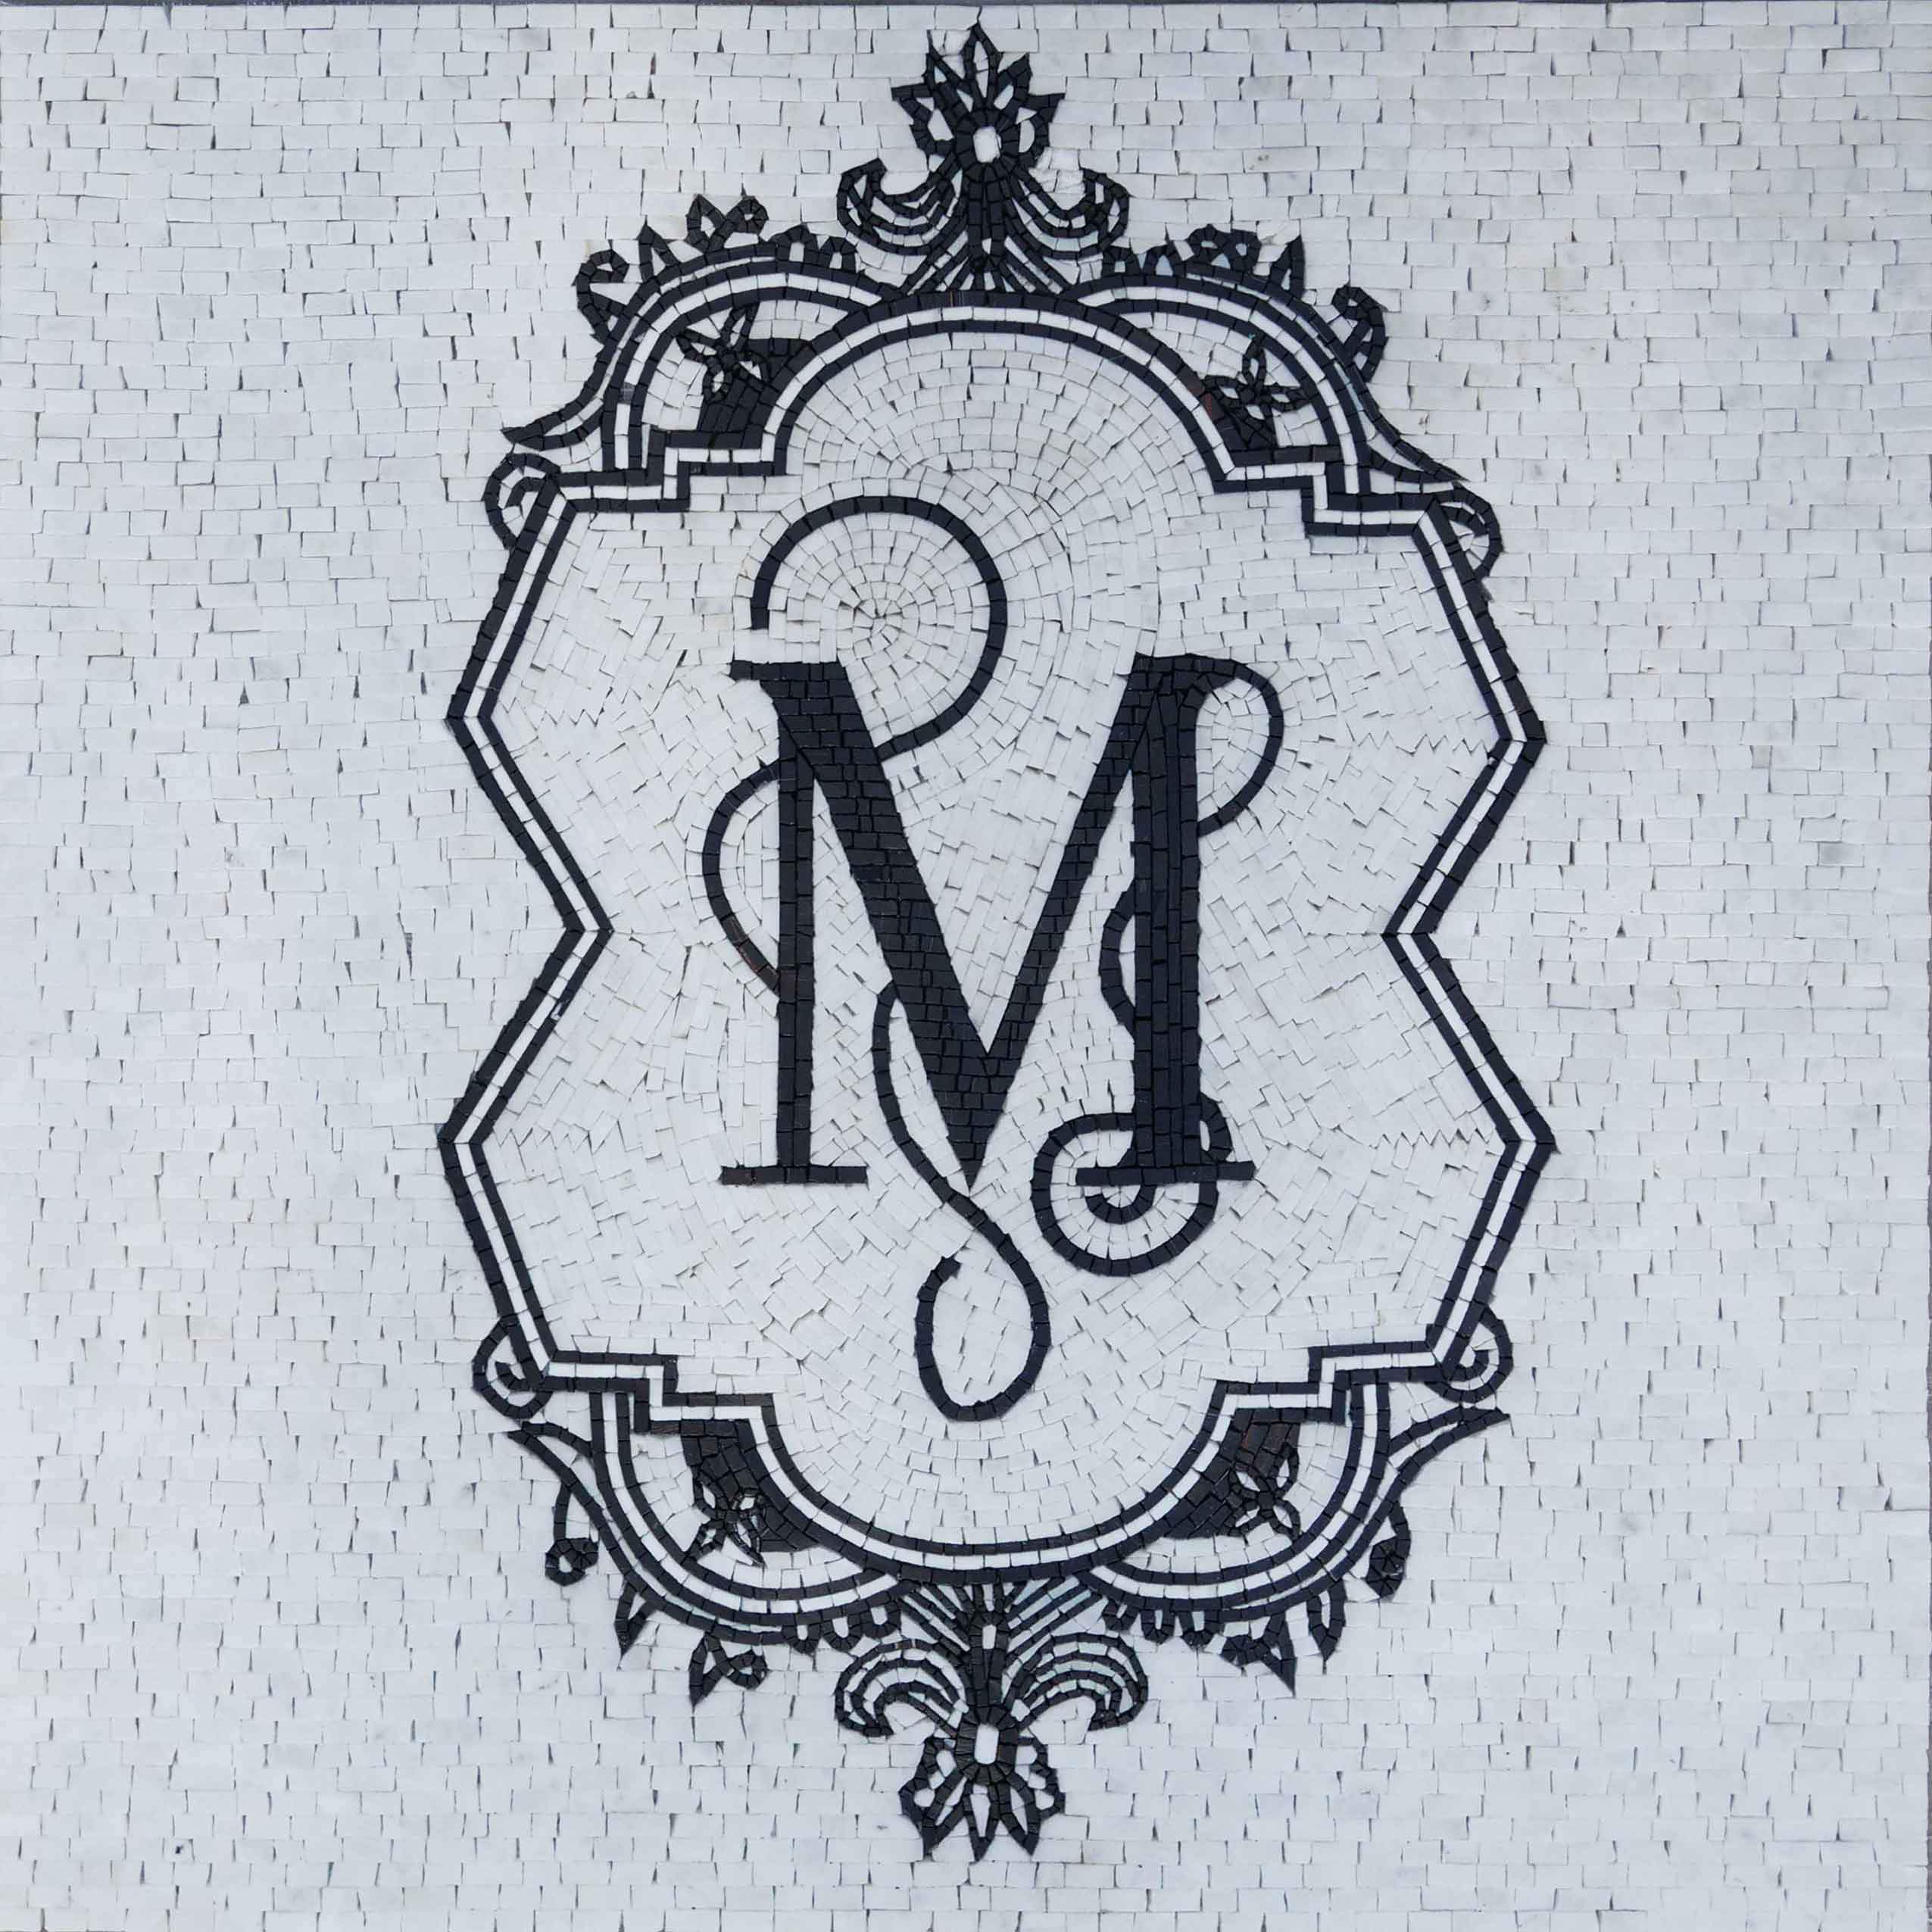 The Ornamented Initial Mosaic Art Pic